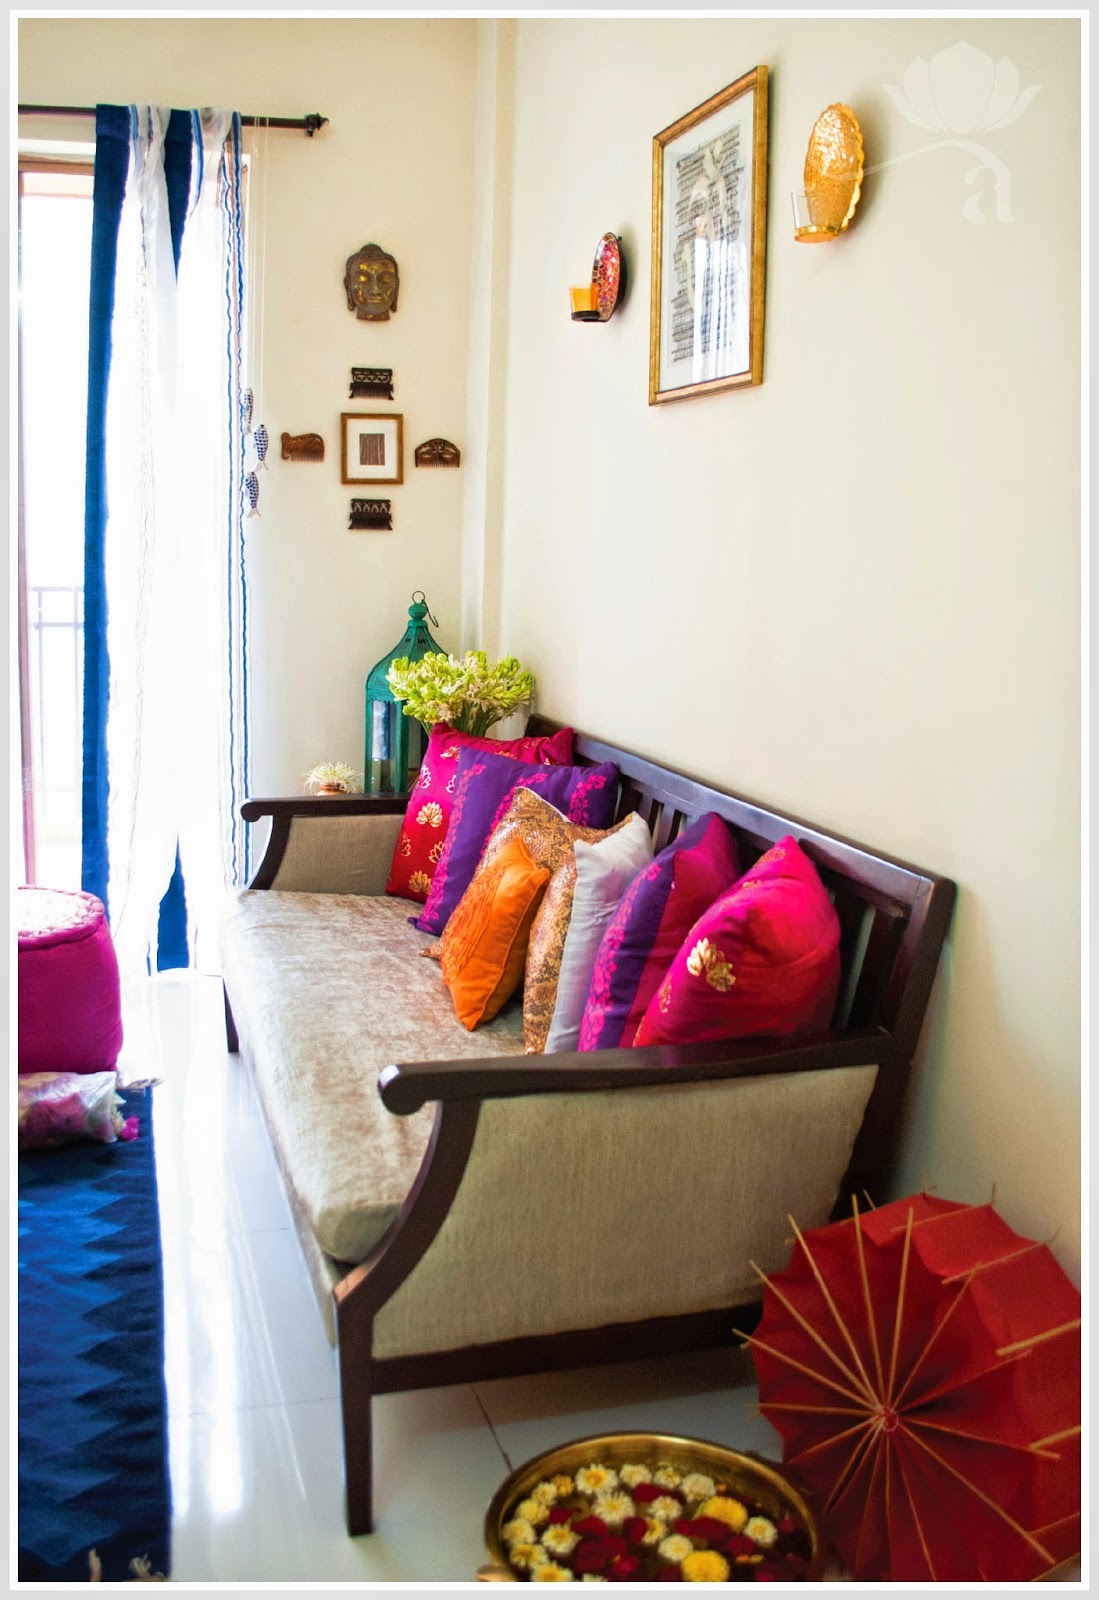 The east coast desi the aaraa by avantika studio tour for Living room ideas indian